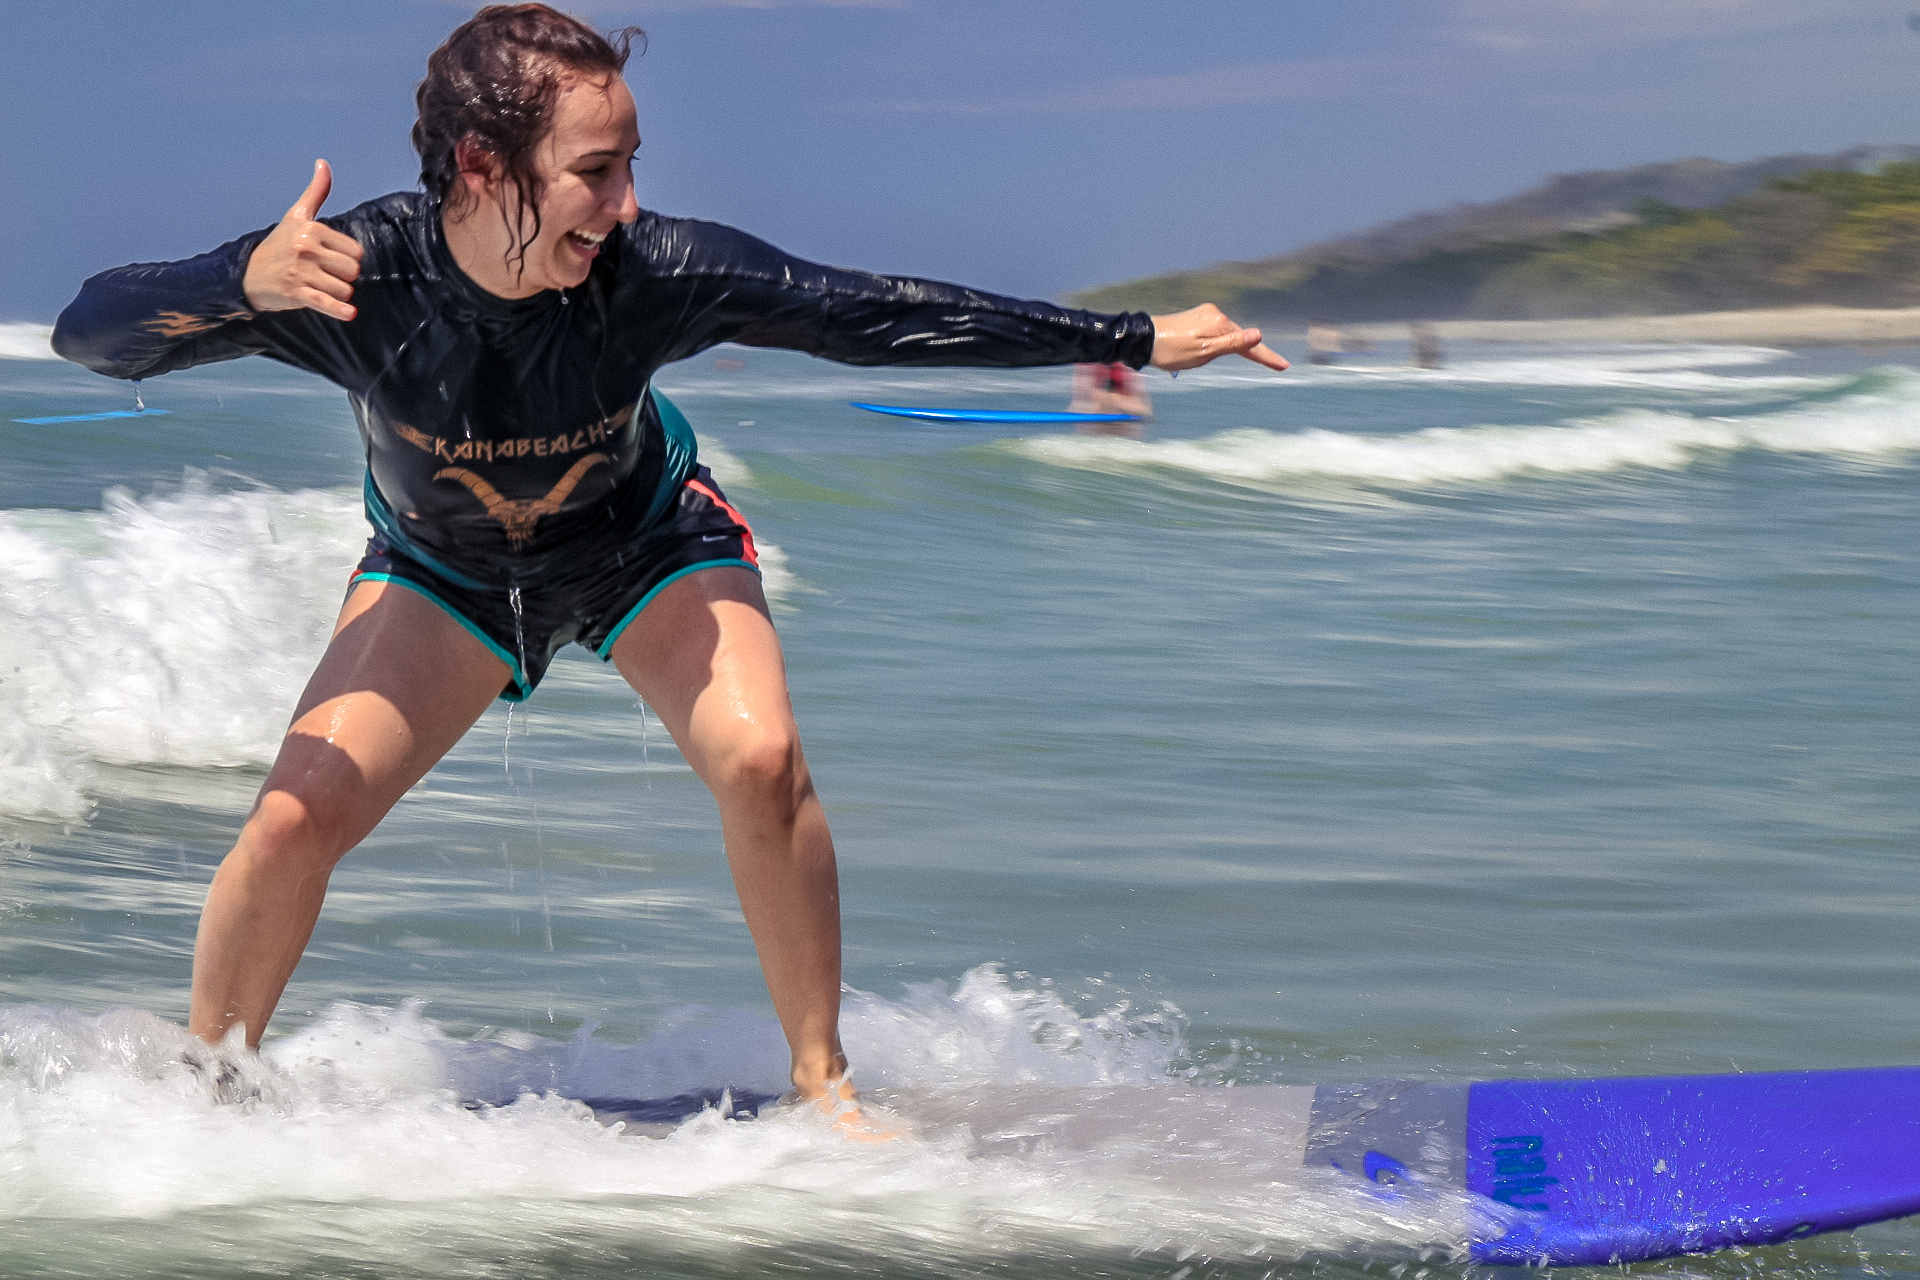 Jontea, our guest, catching waves on her first lesson in February 2019!